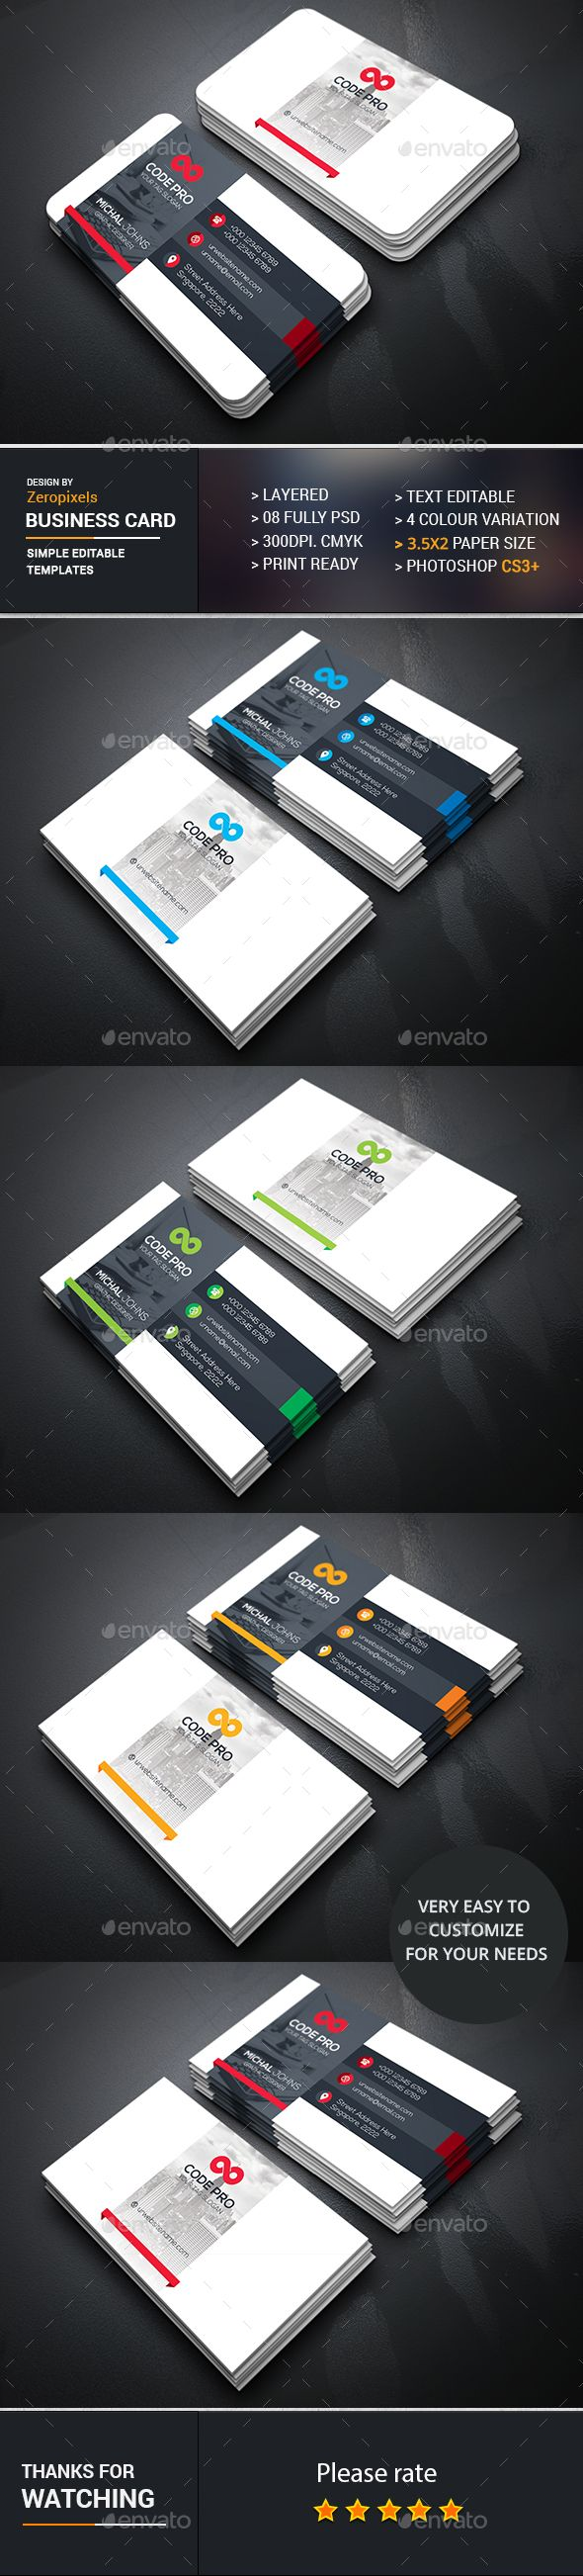 400 best business cards images on pinterest business card design fiverr freelancer will provide business cards stationery services and professional business card design including print ready within 2 days colourmoves